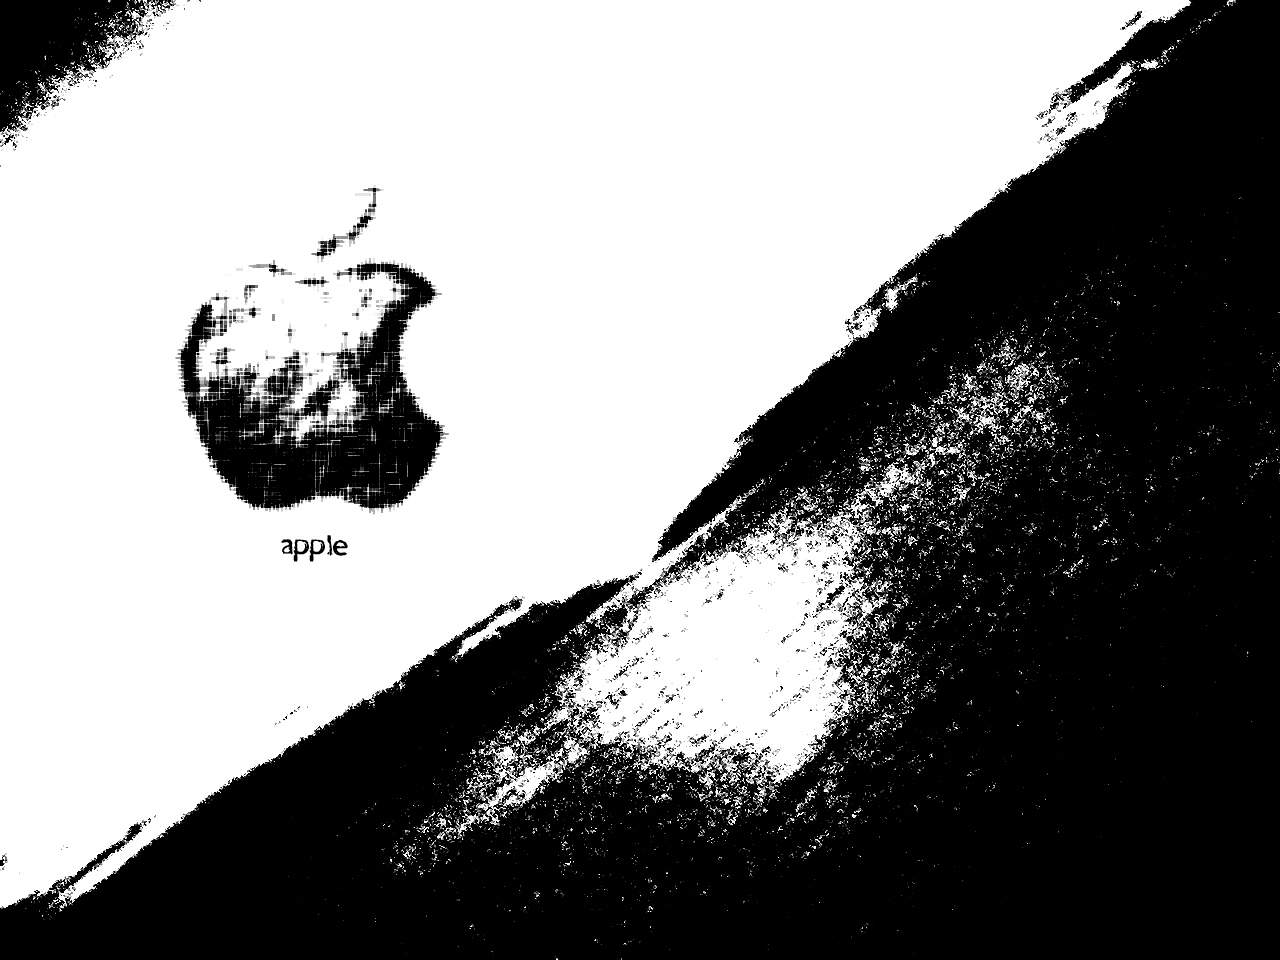 Apple Wallpapers Black And White Desktop For Apple Leopard On Mac 1280x960